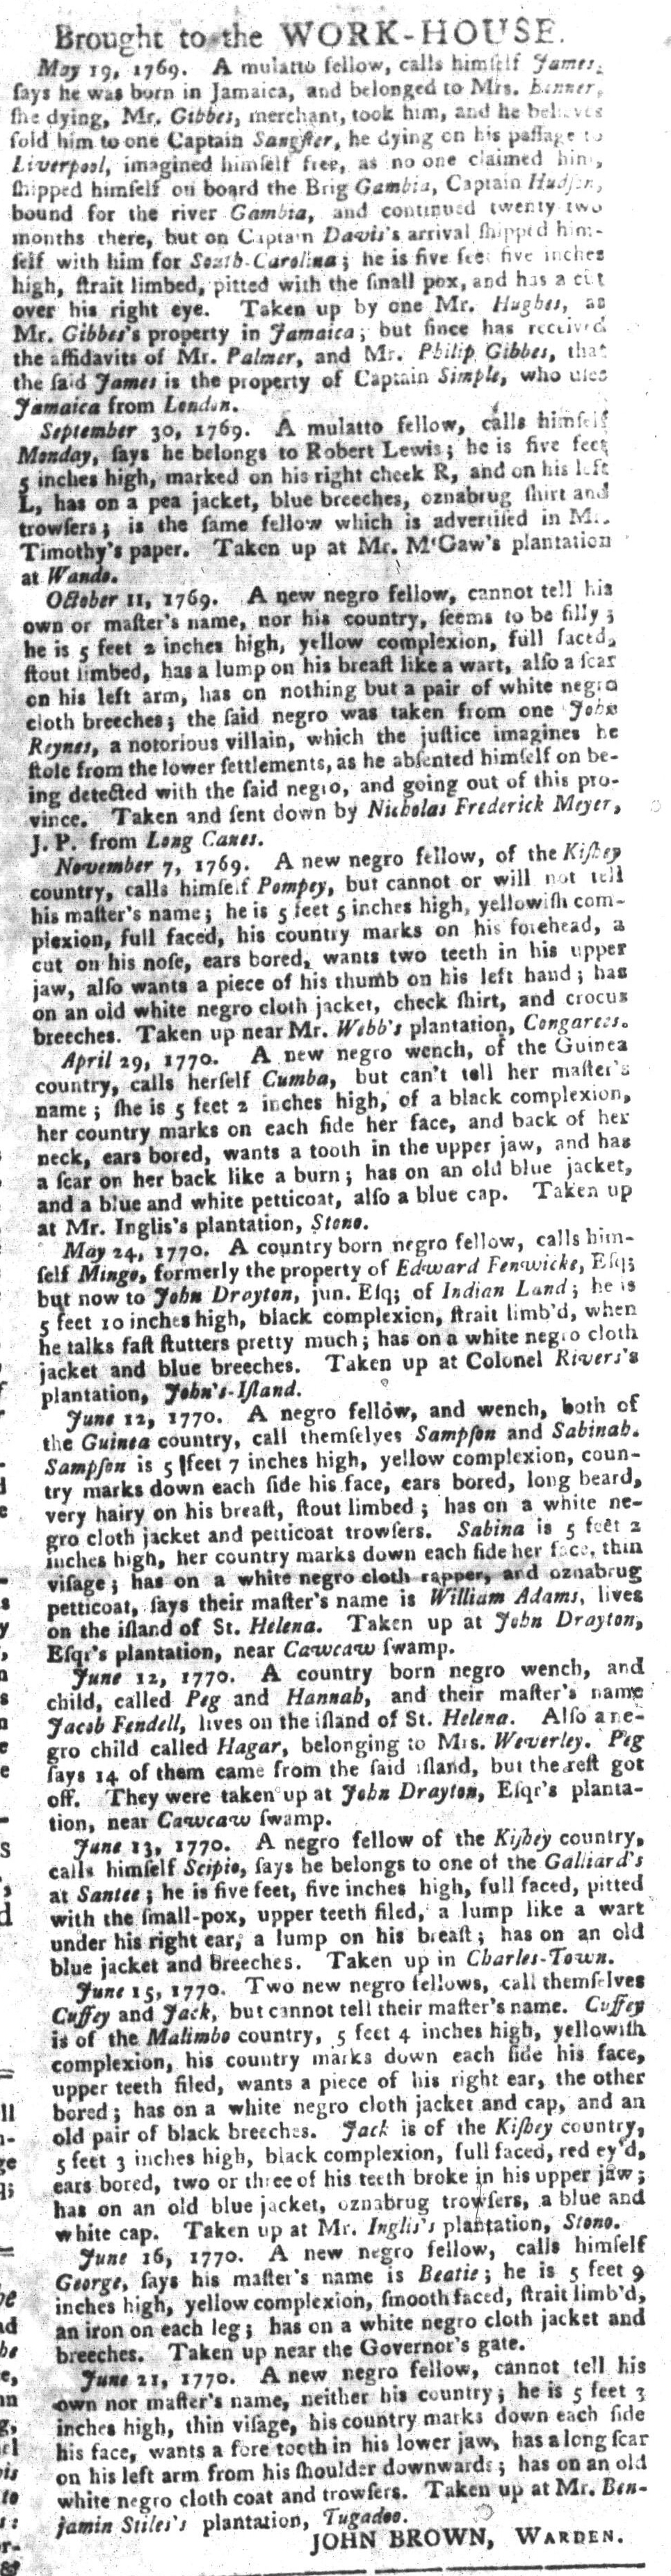 Jun 26 - South-Carolina Gazette and Country Journal Slavery 8